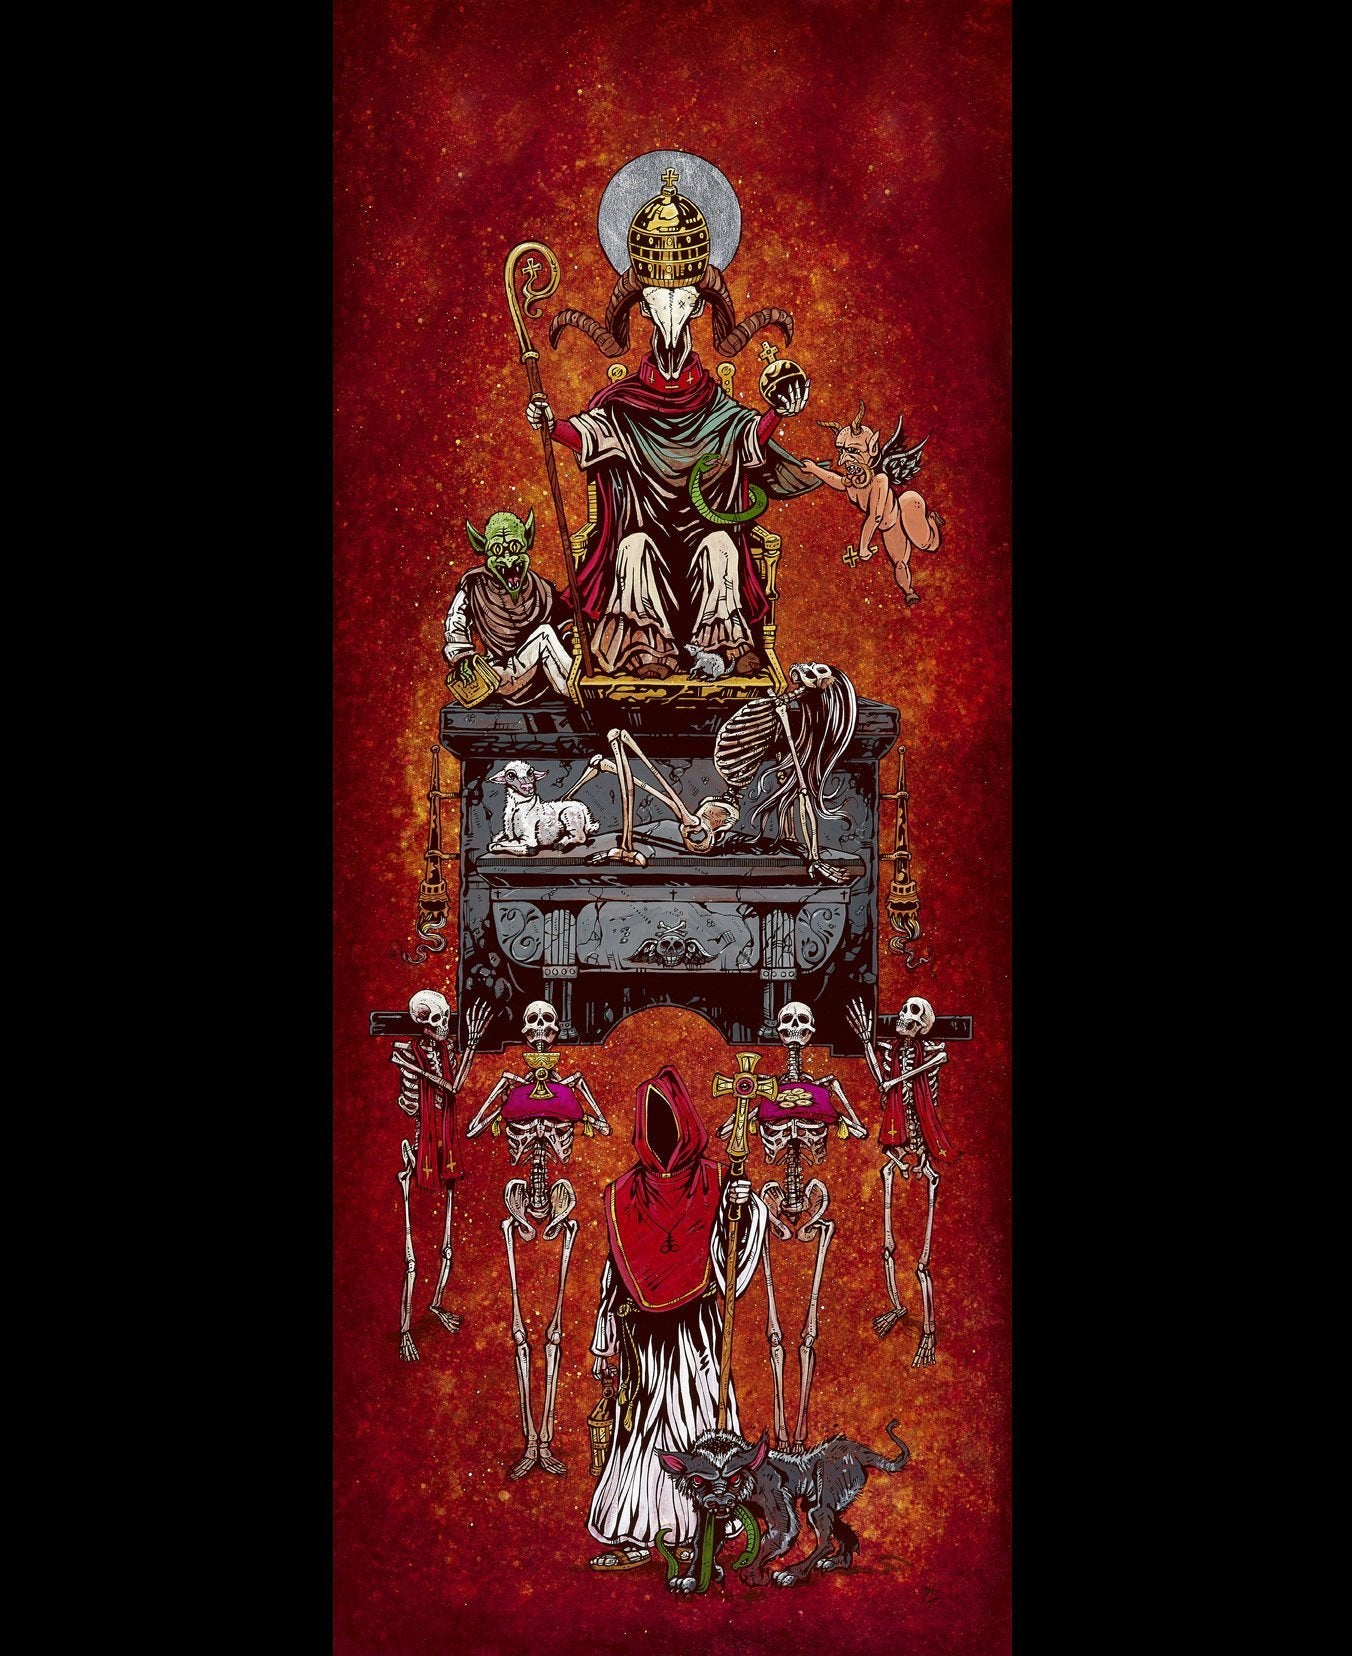 Parade of the False Idol by Day of the Dead Artist David Lozeau, Day of the Dead Art, Dia de los Muertos Art, Dia de los Muertos Artist